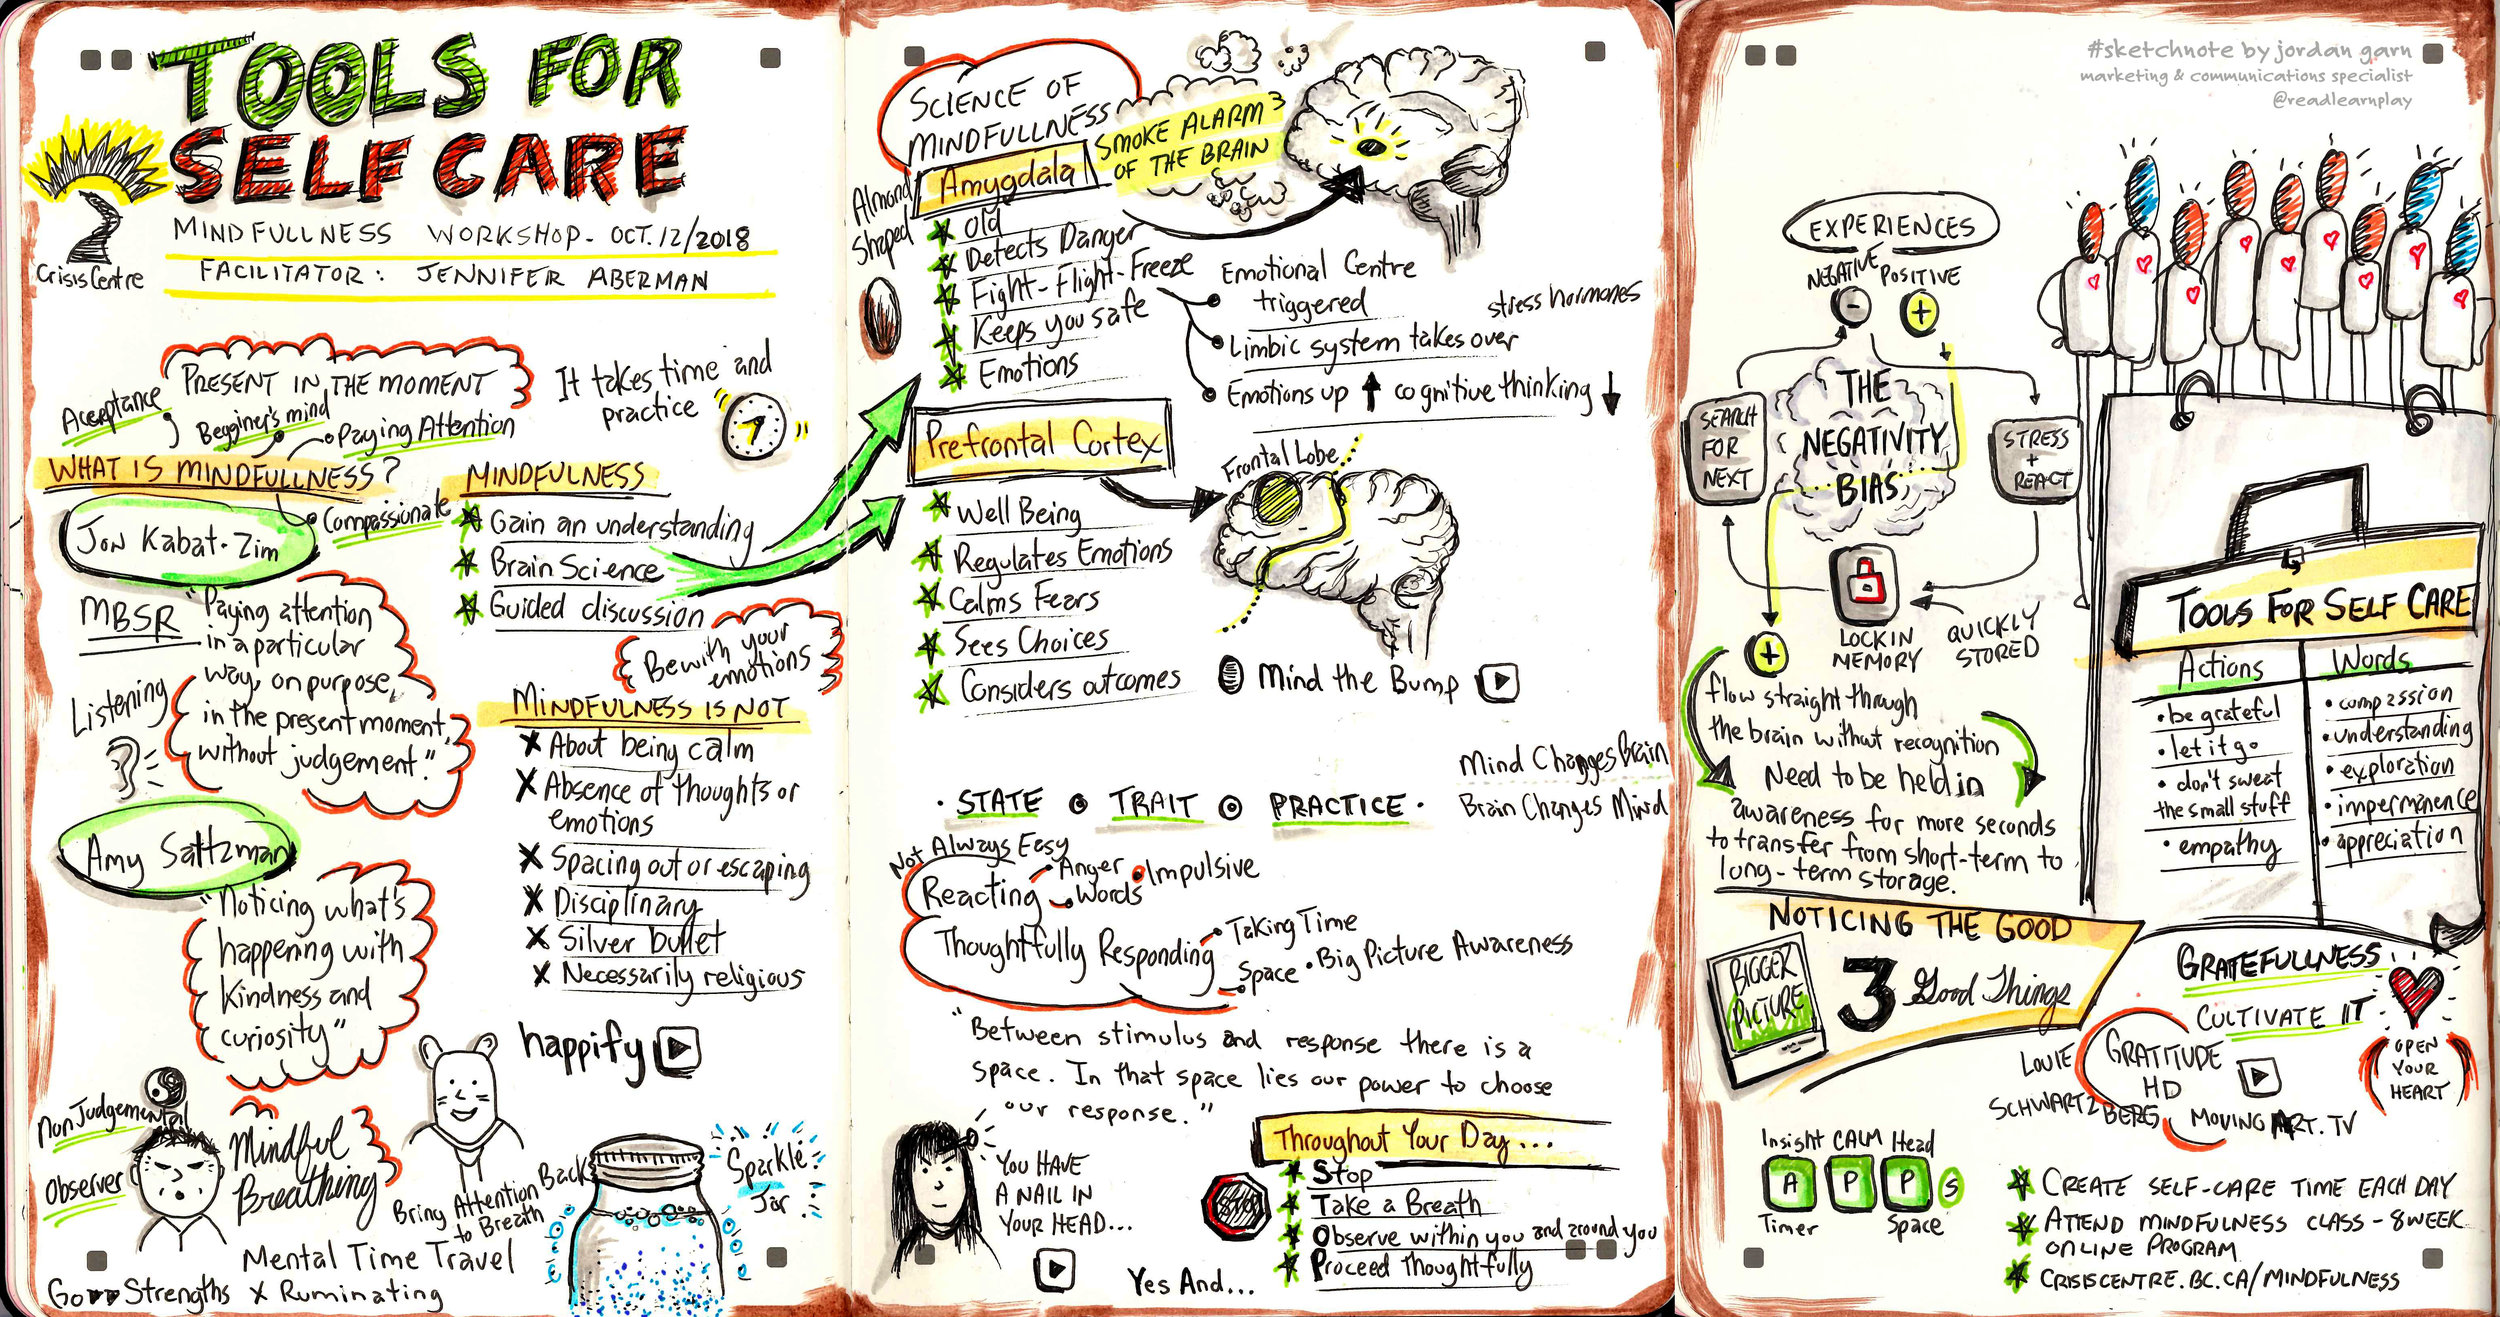 TOOLS FOR SELF CARE - SKETCHNOTE - I attended a mindfulness workshop in the Fall of 2018 facilitated by Jennifer Aberman and BC Crisis Centre. I created a sketchnote of the workshop in pen and ink and later added colour. The sketchnote was shared with all staff once the workshops wrapped up in mid-November as a valuable reminder of self-care tools.Format: moleskine® notebook